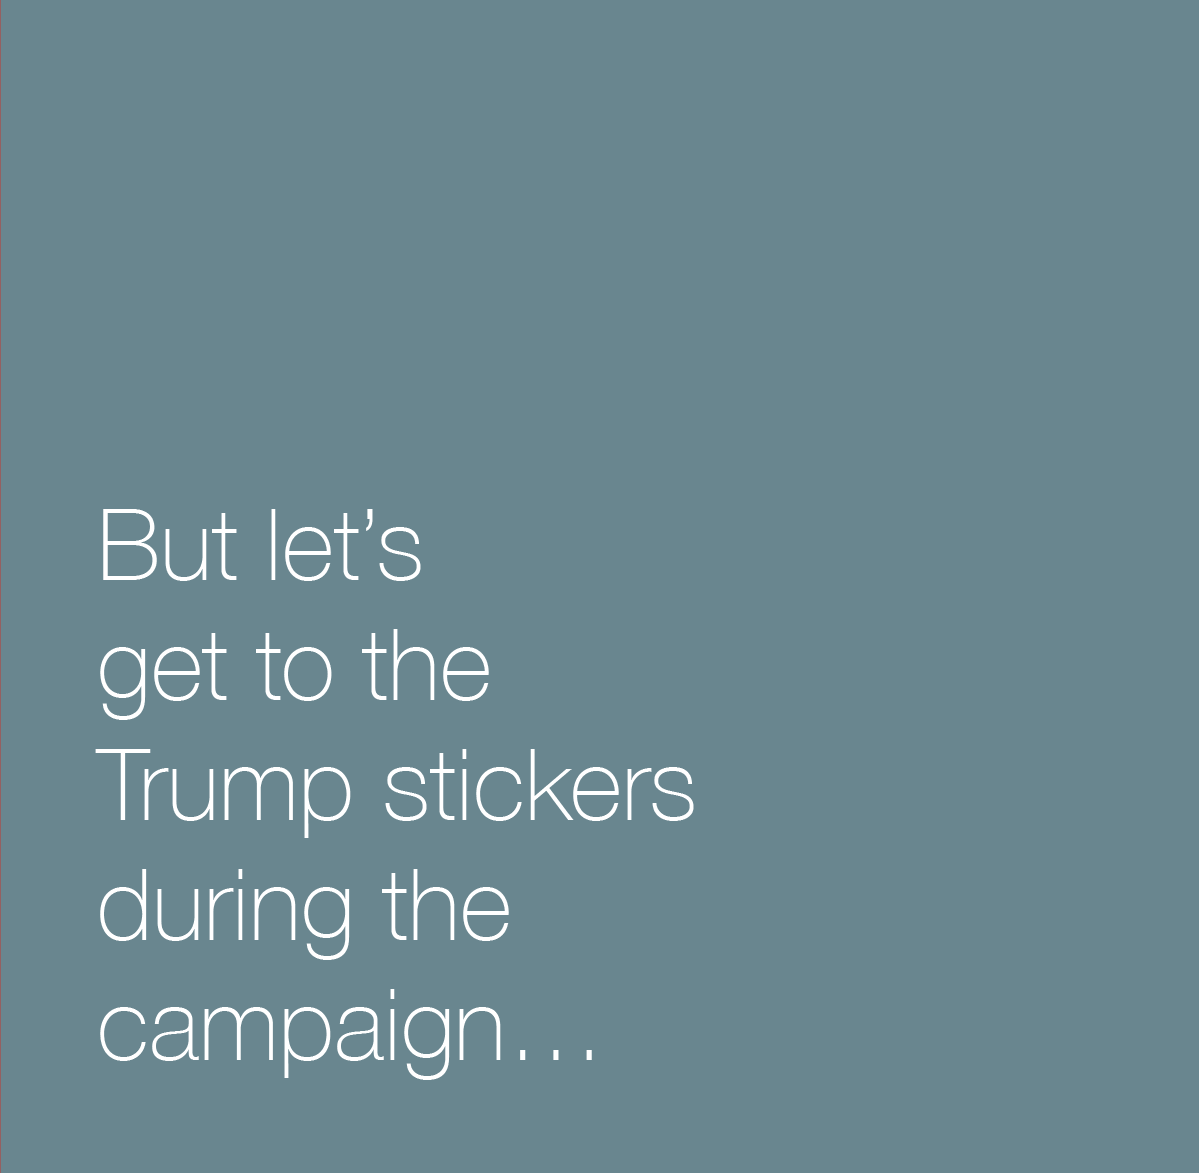 But let's get to the Trump stickers during the 2016 campaign